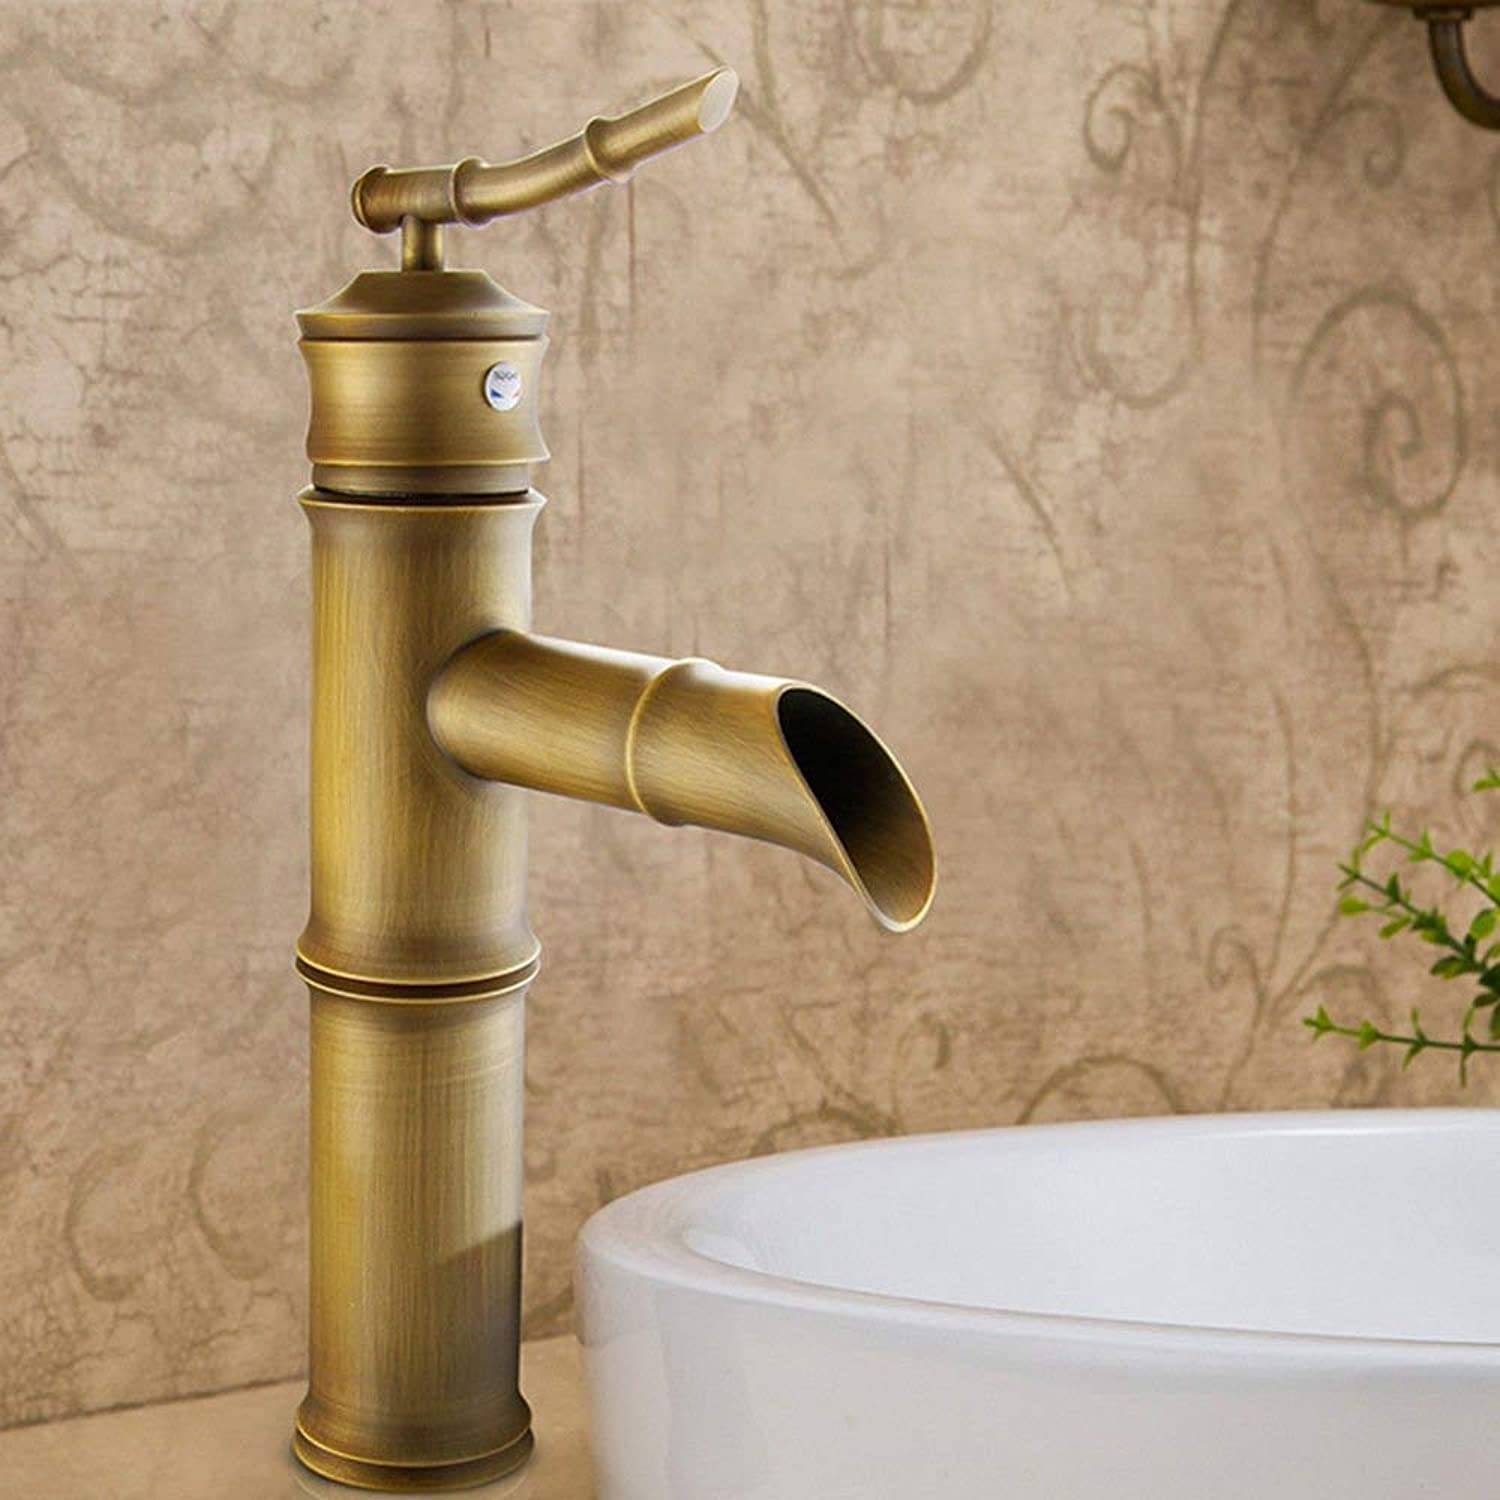 Oudan Continental antique basin faucet antique copper basin faucet basin classic Bamboo Arts Festival and cold water faucet single handle single hole the C of section 2.